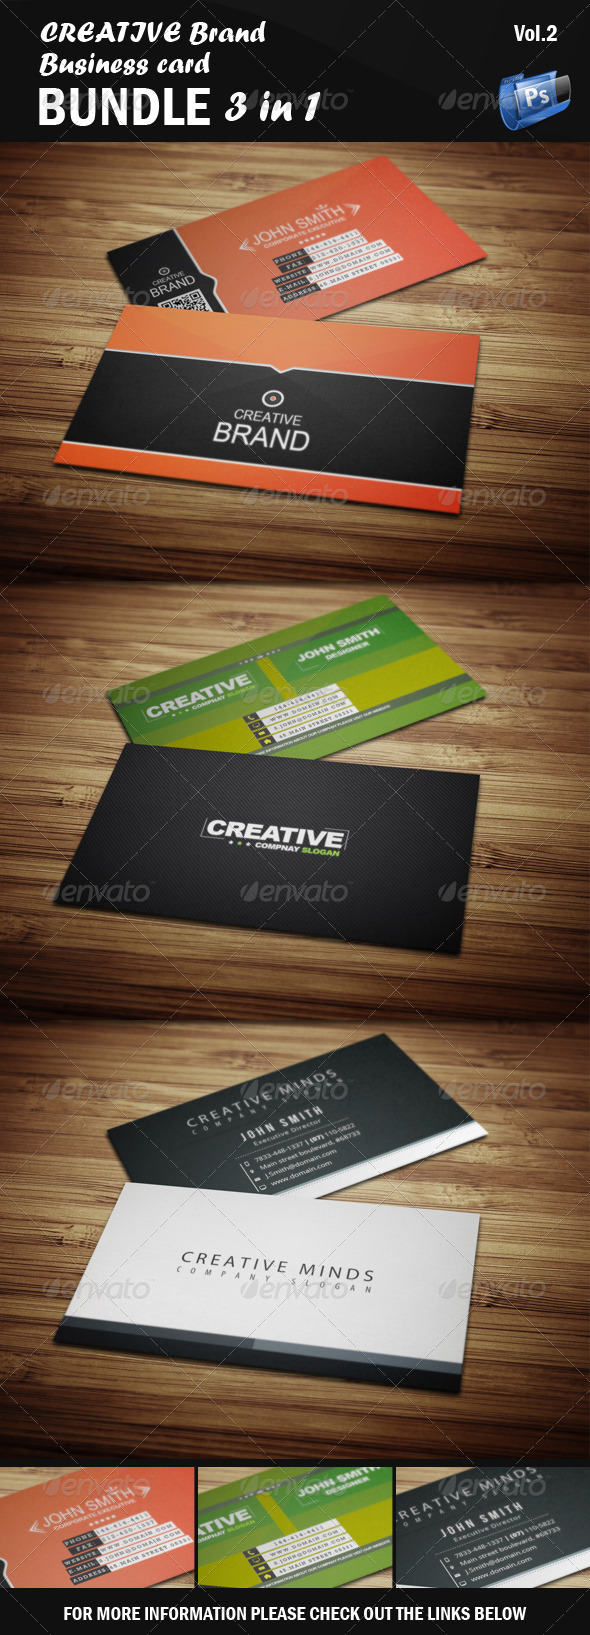 Creative Business Card - Bundle 3 in 1 [Vol.2] - Creative Business Cards